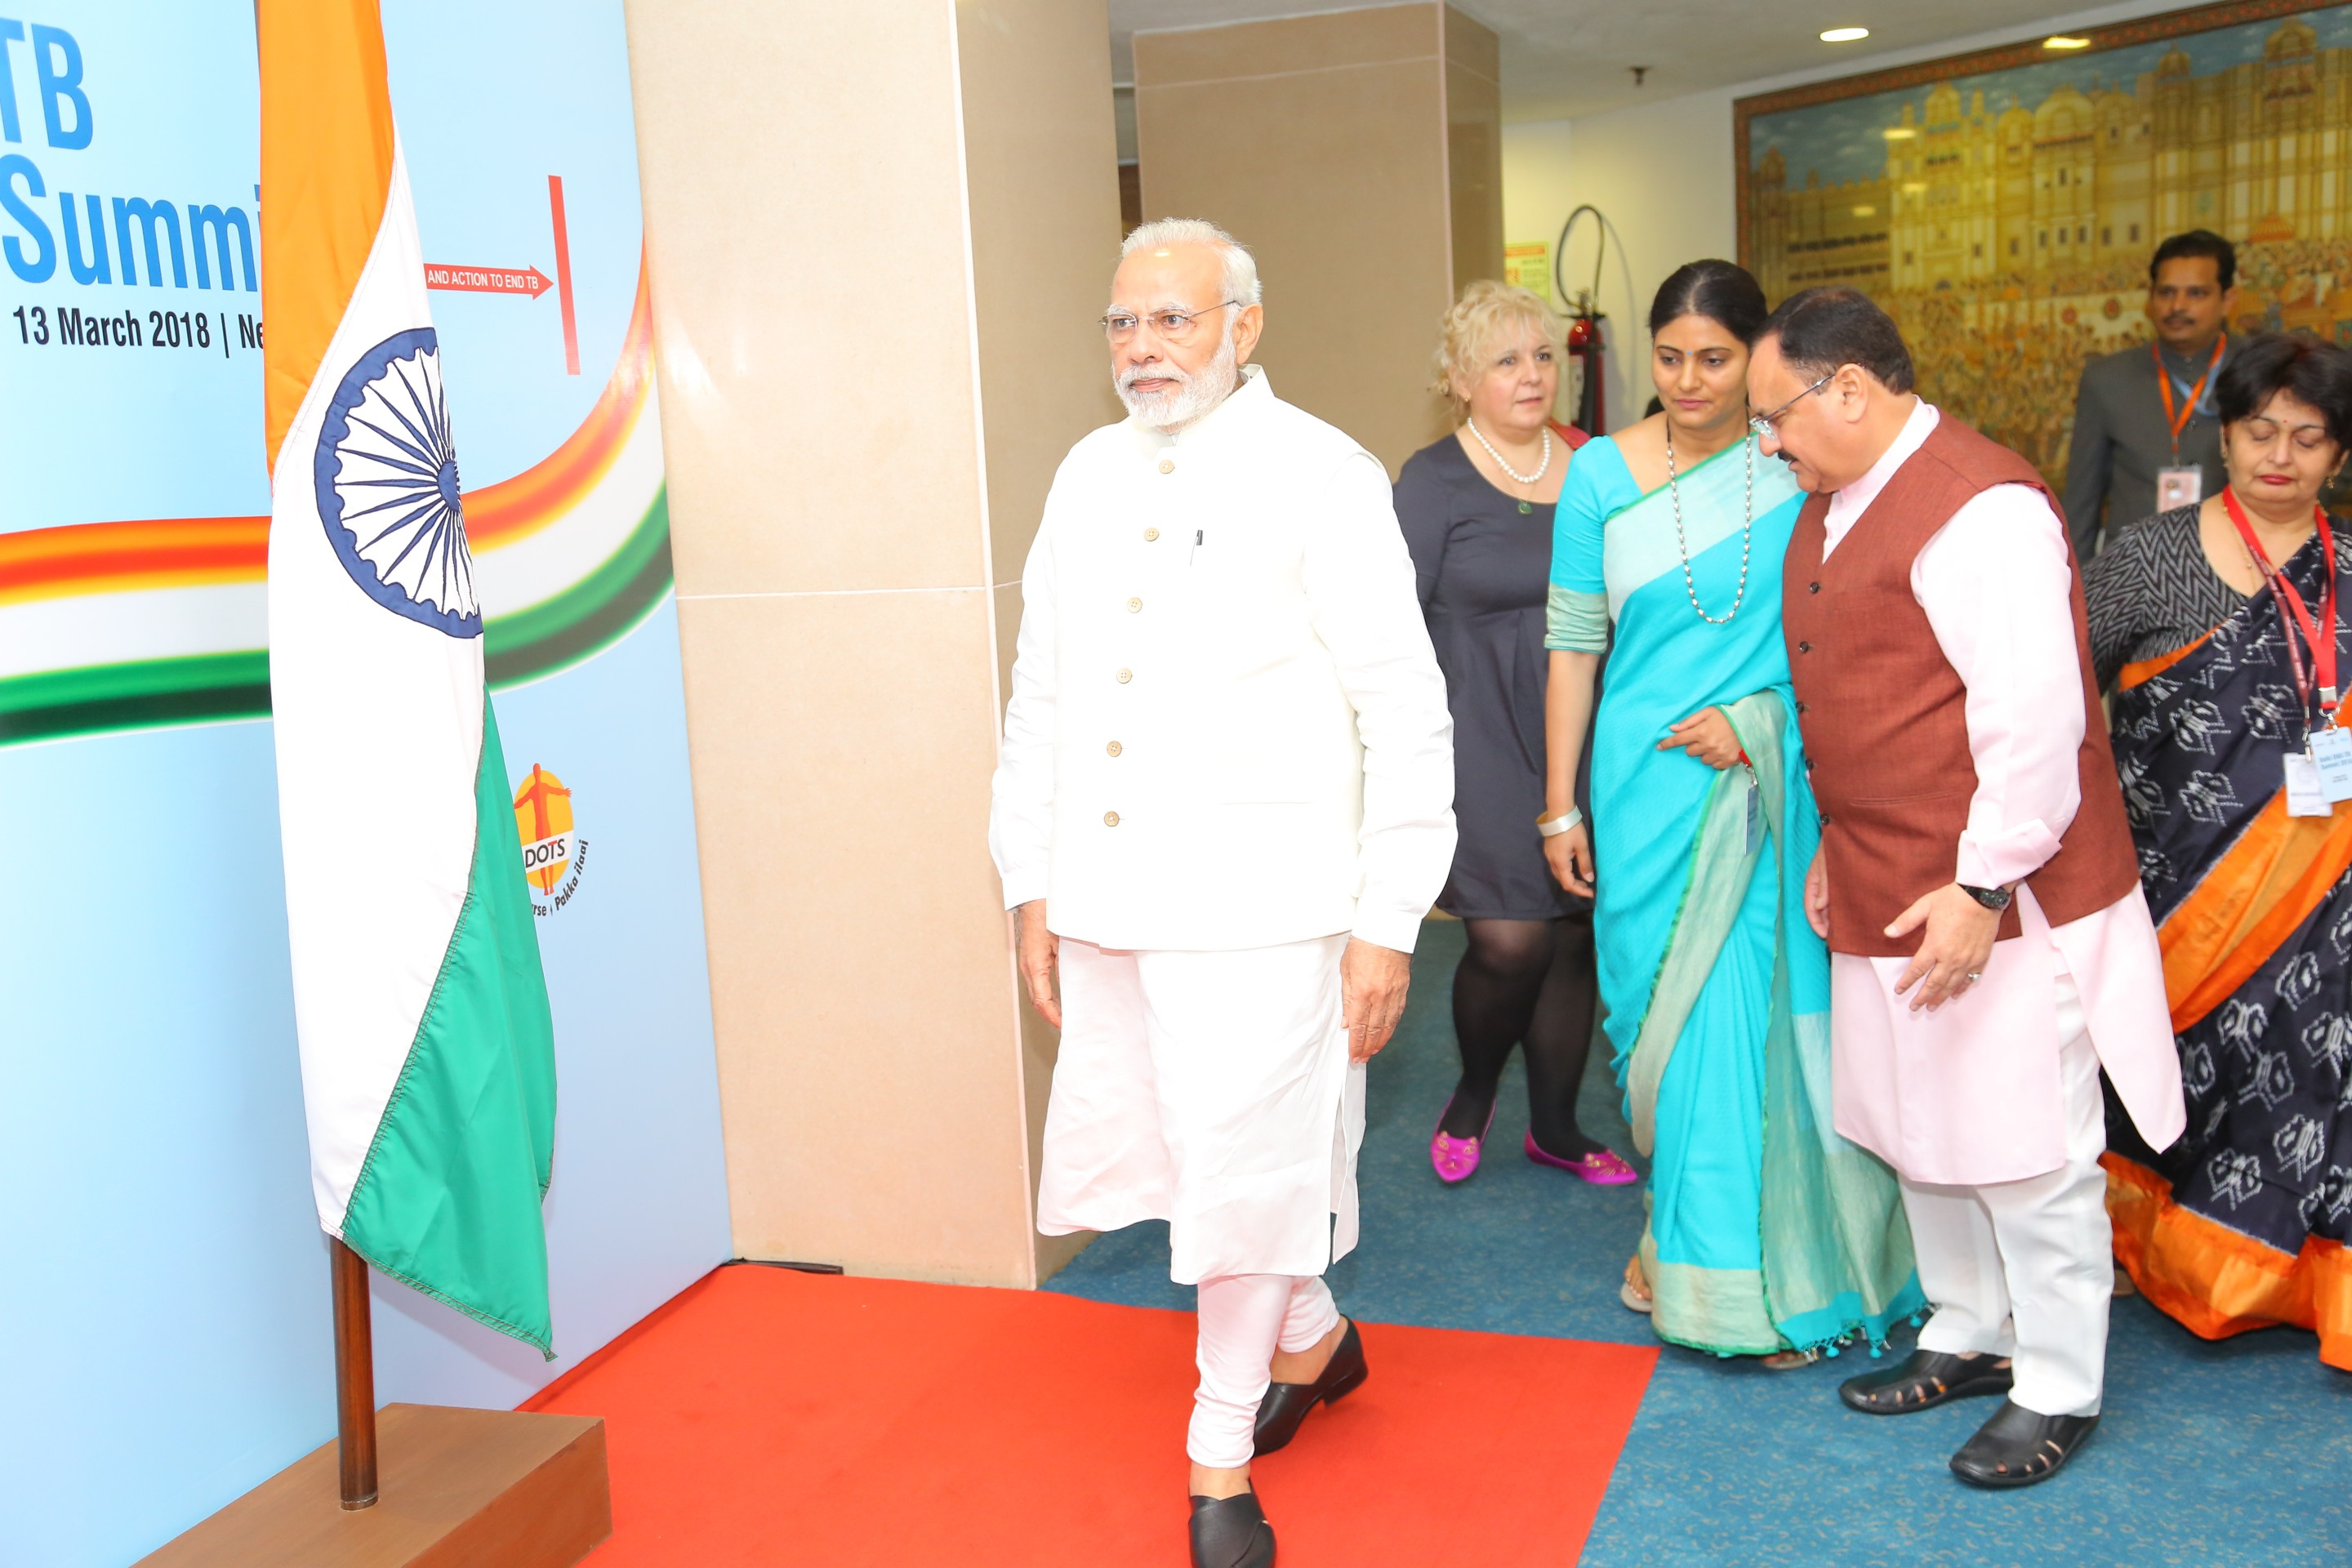 Honble Prime Minister arrives at Vigyan Bhawan (13th March 2018)